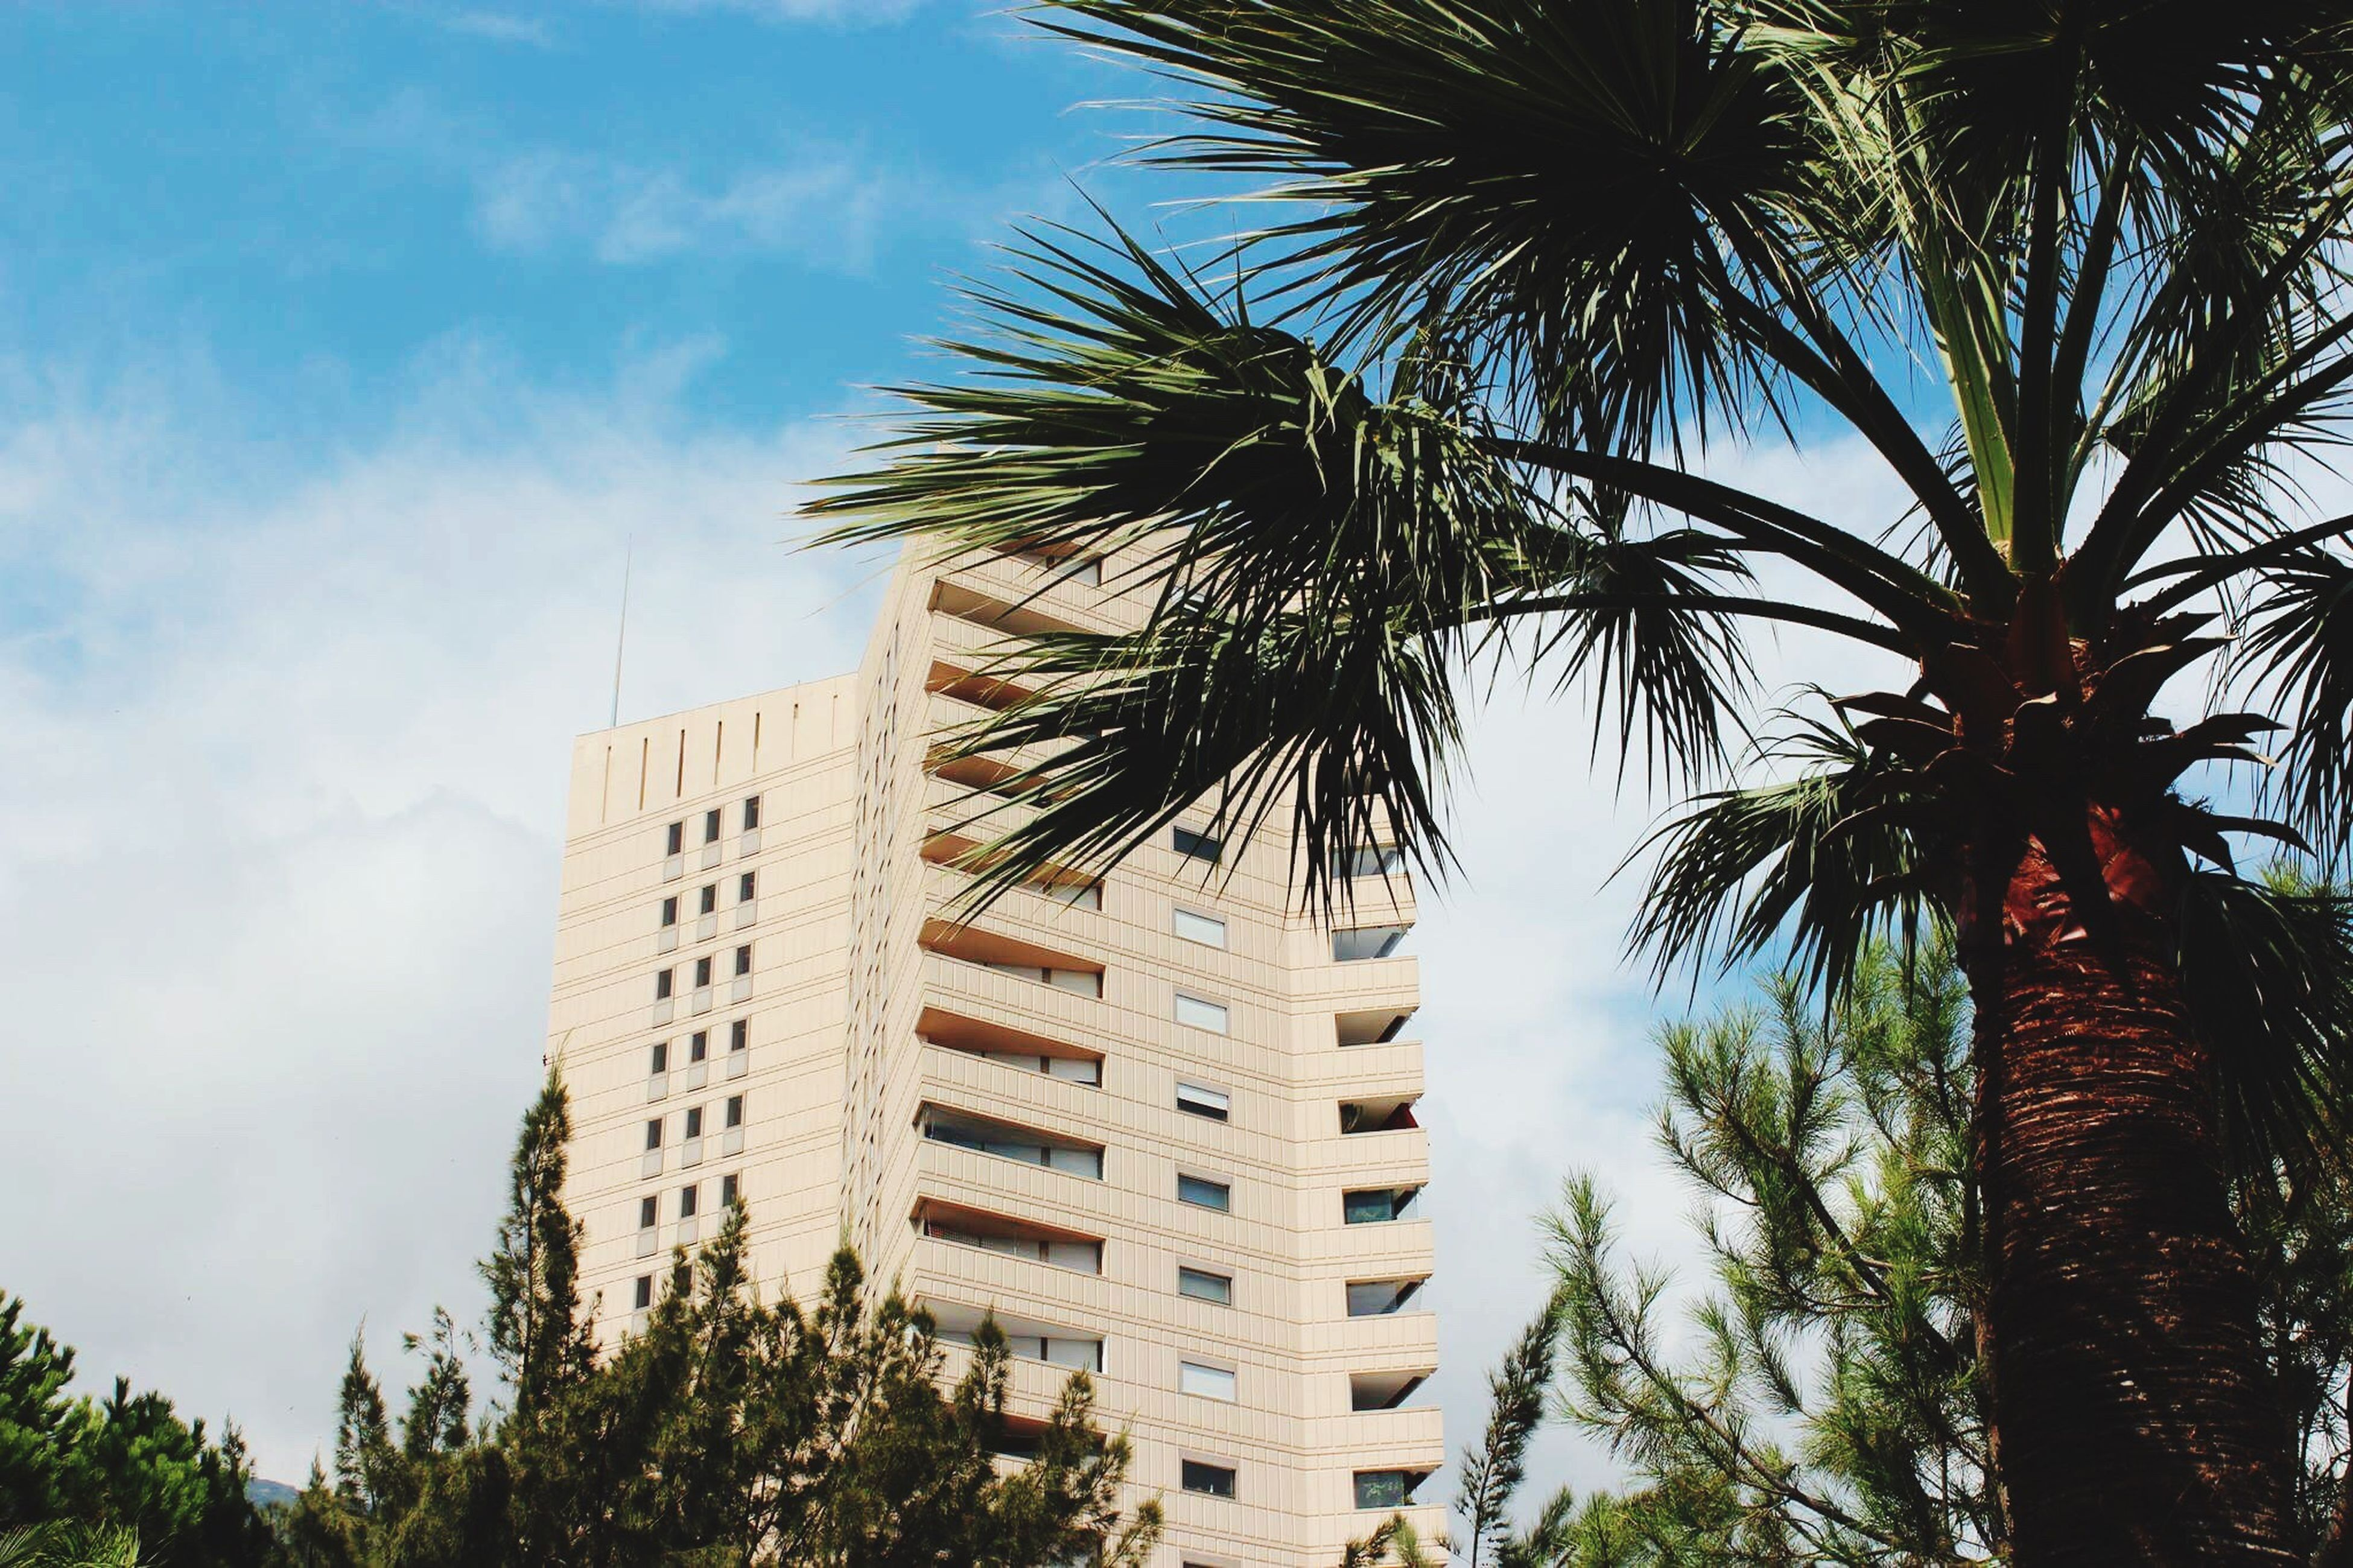 tree, palm tree, growth, building exterior, low angle view, city, architecture, built structure, sky, no people, outdoors, day, cloud - sky, modern, skyscraper, branch, nature